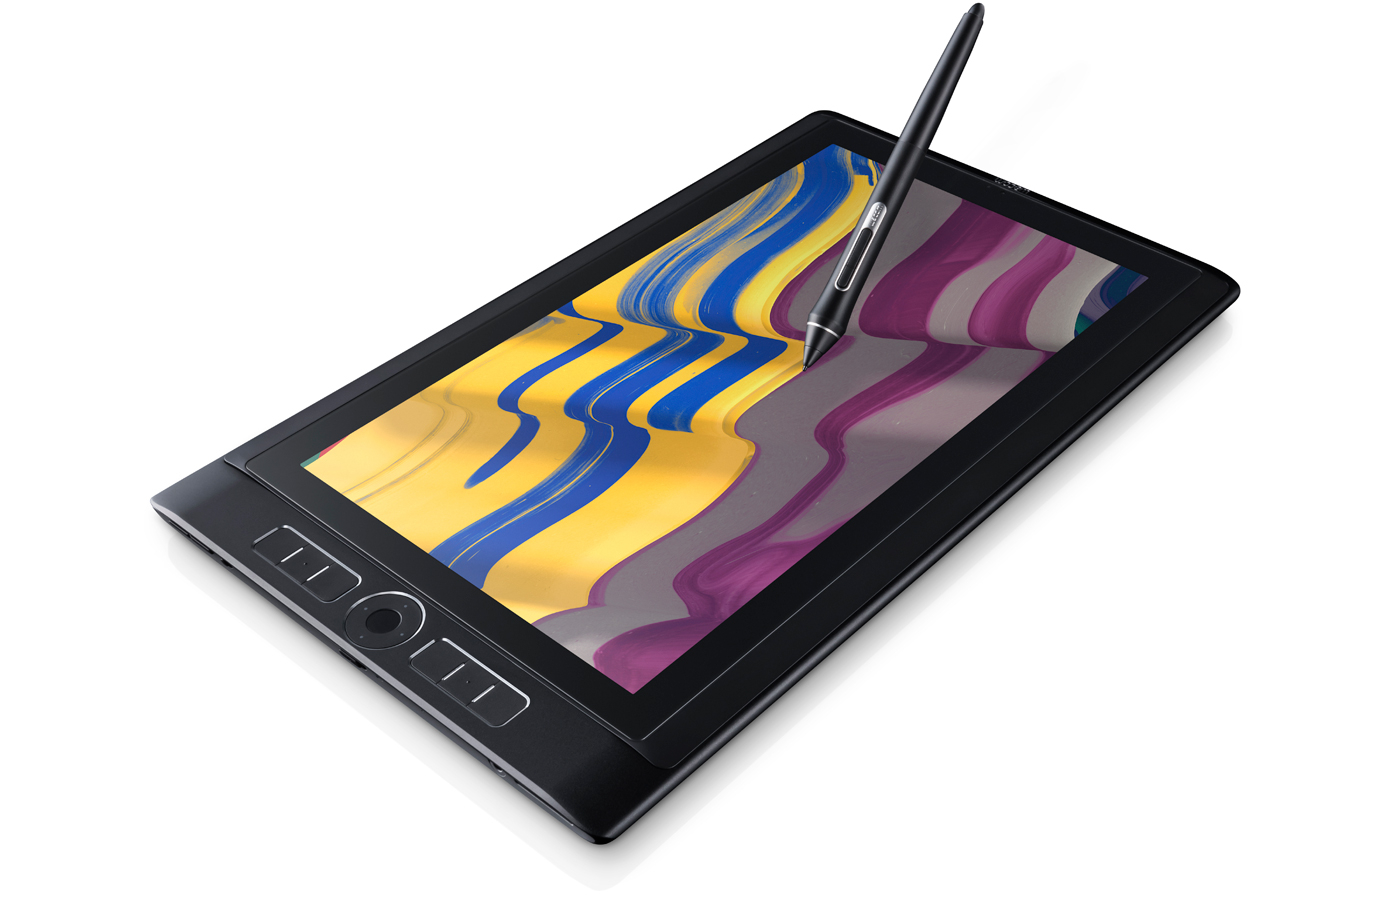 Wacom Presents MobileStudio Pro Tablets